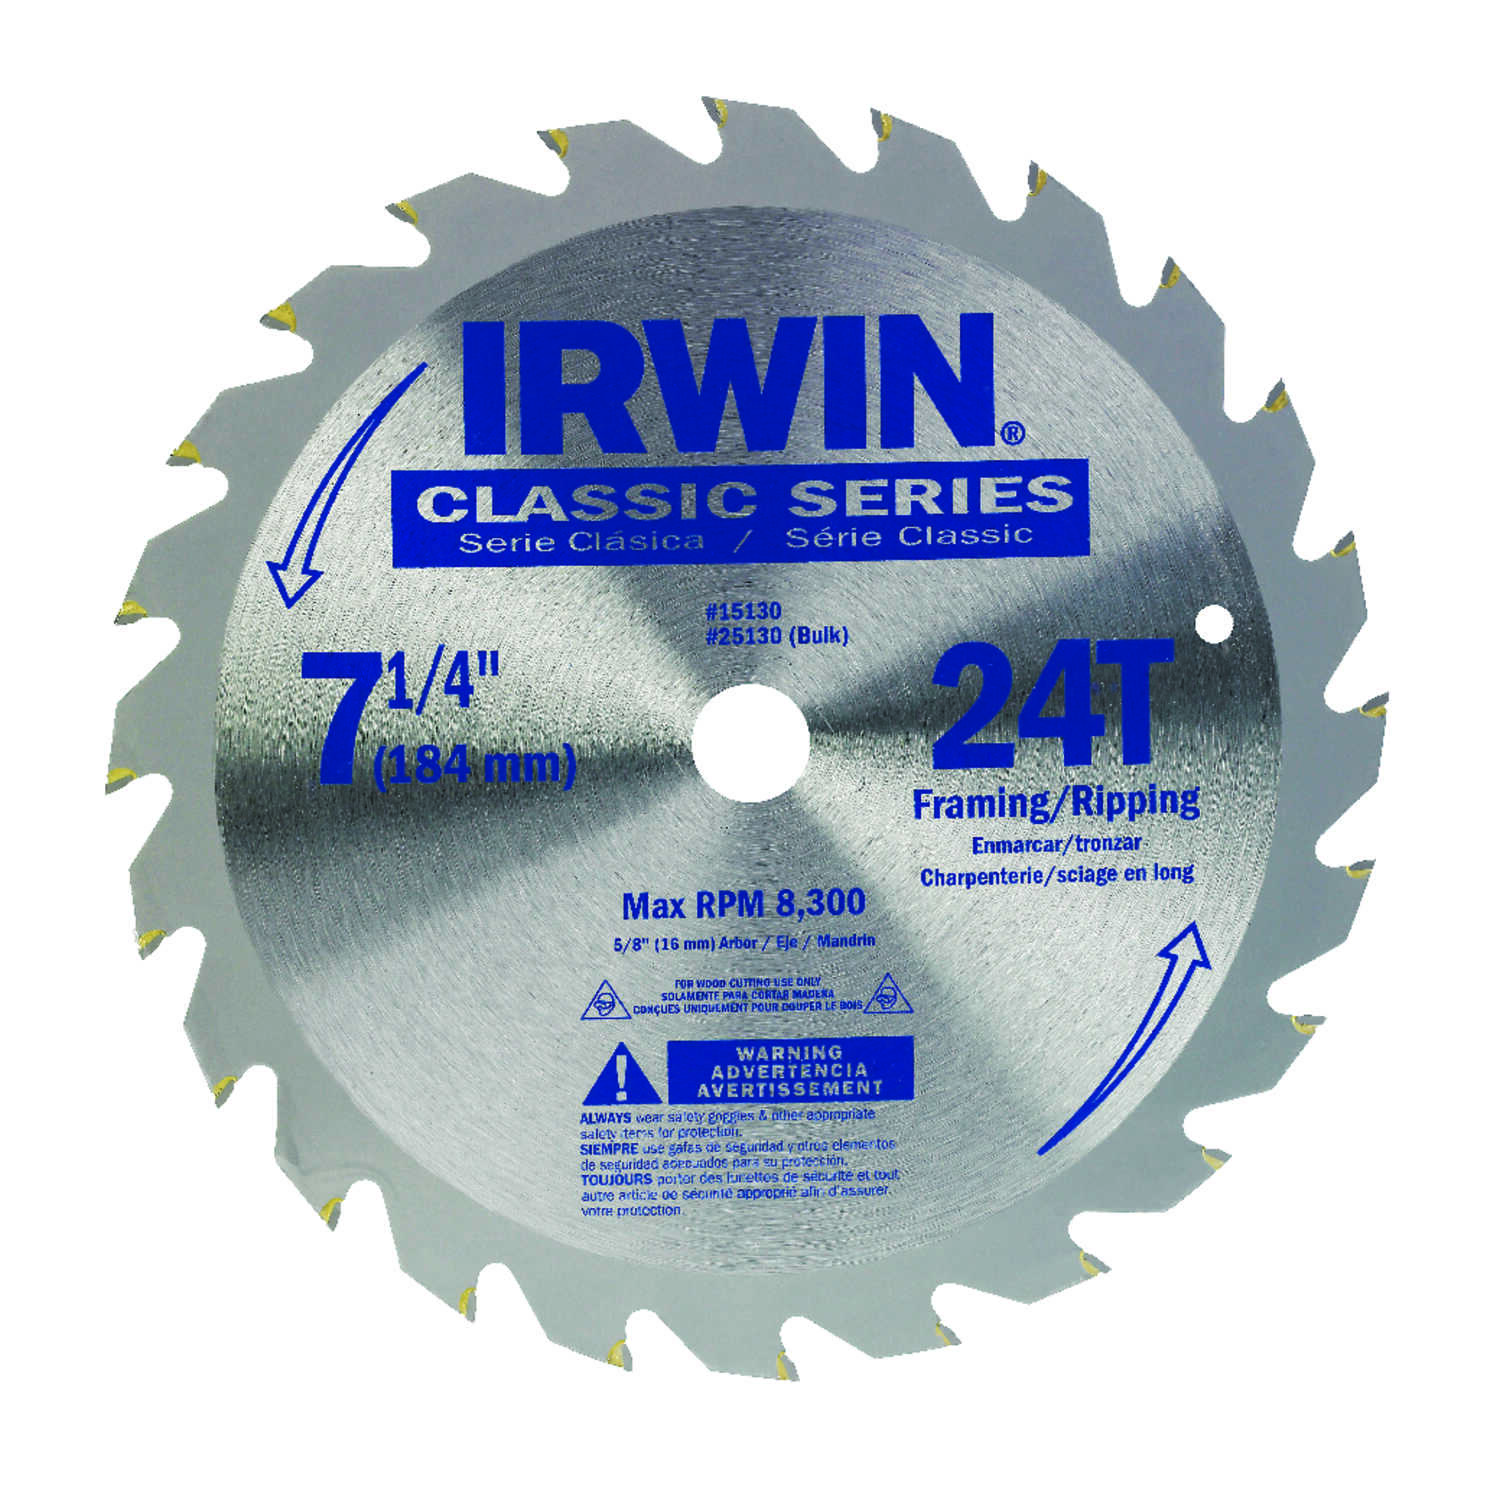 Irwin  Classic  Tungsten C2 Carbide Tip  0.055 in.  Circular Saw Blade  24 teeth 5/8  1 pk 7-1/4